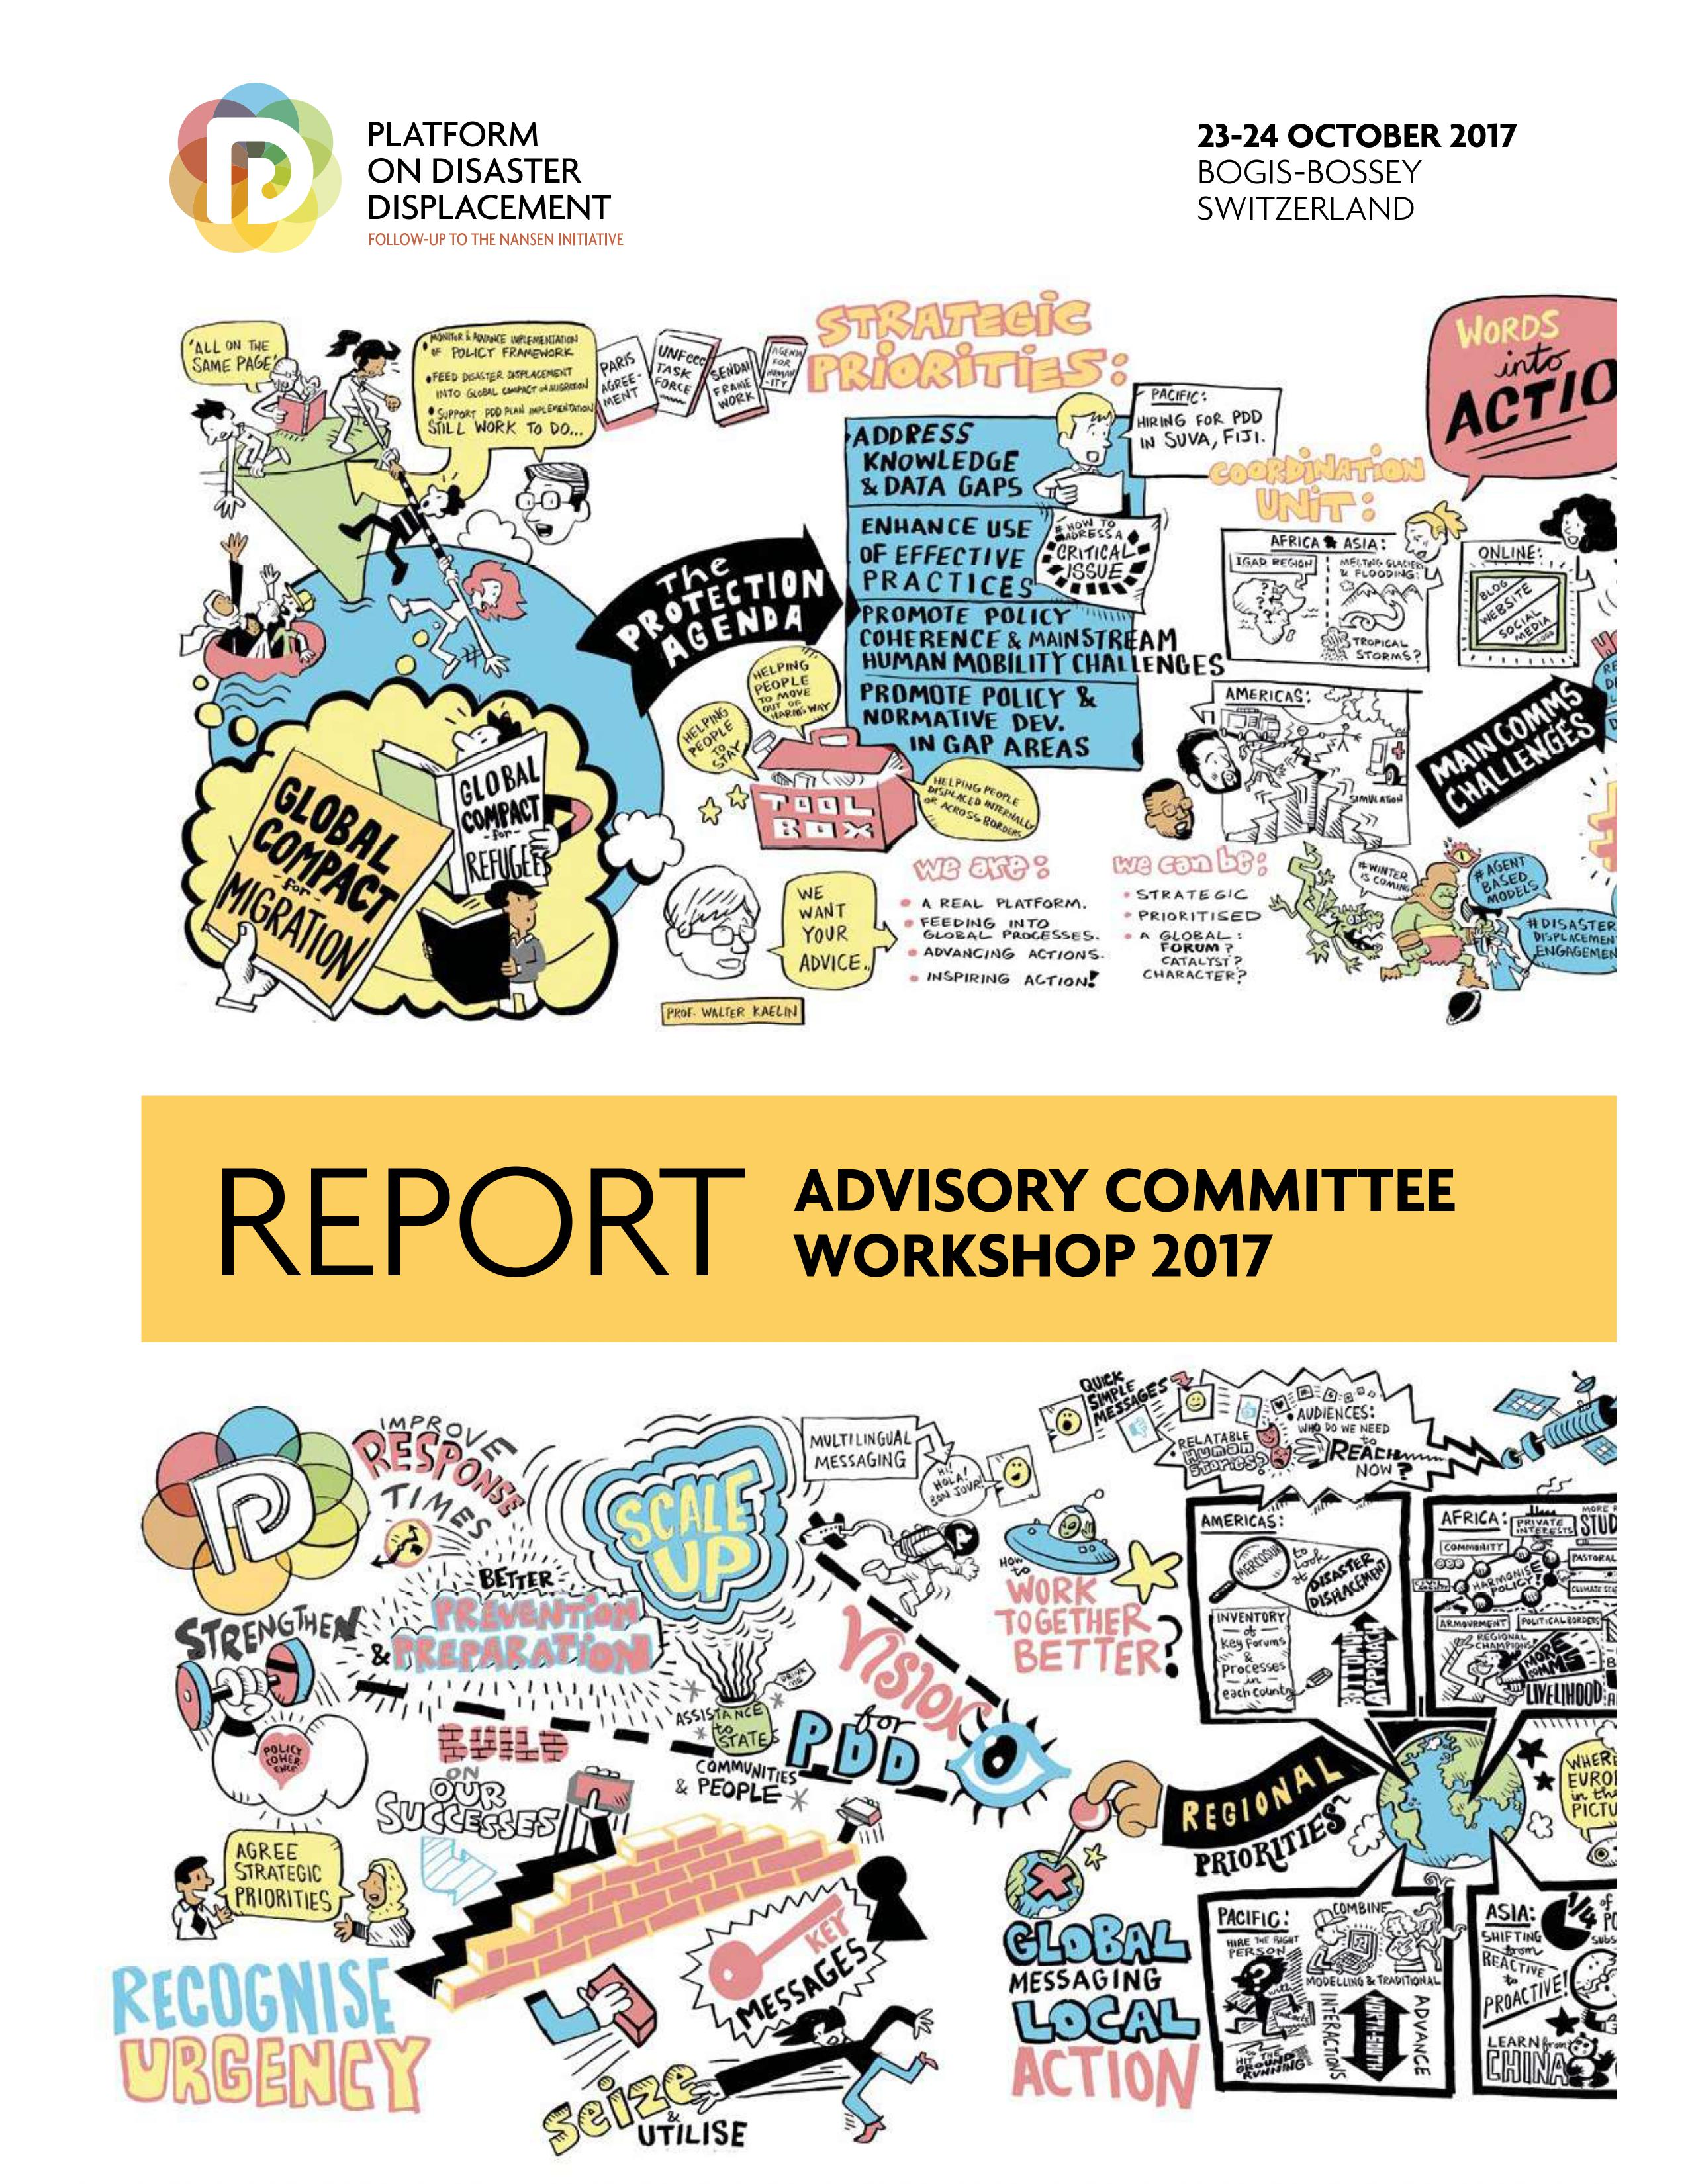 Report Advisory Committee Workshop 2017